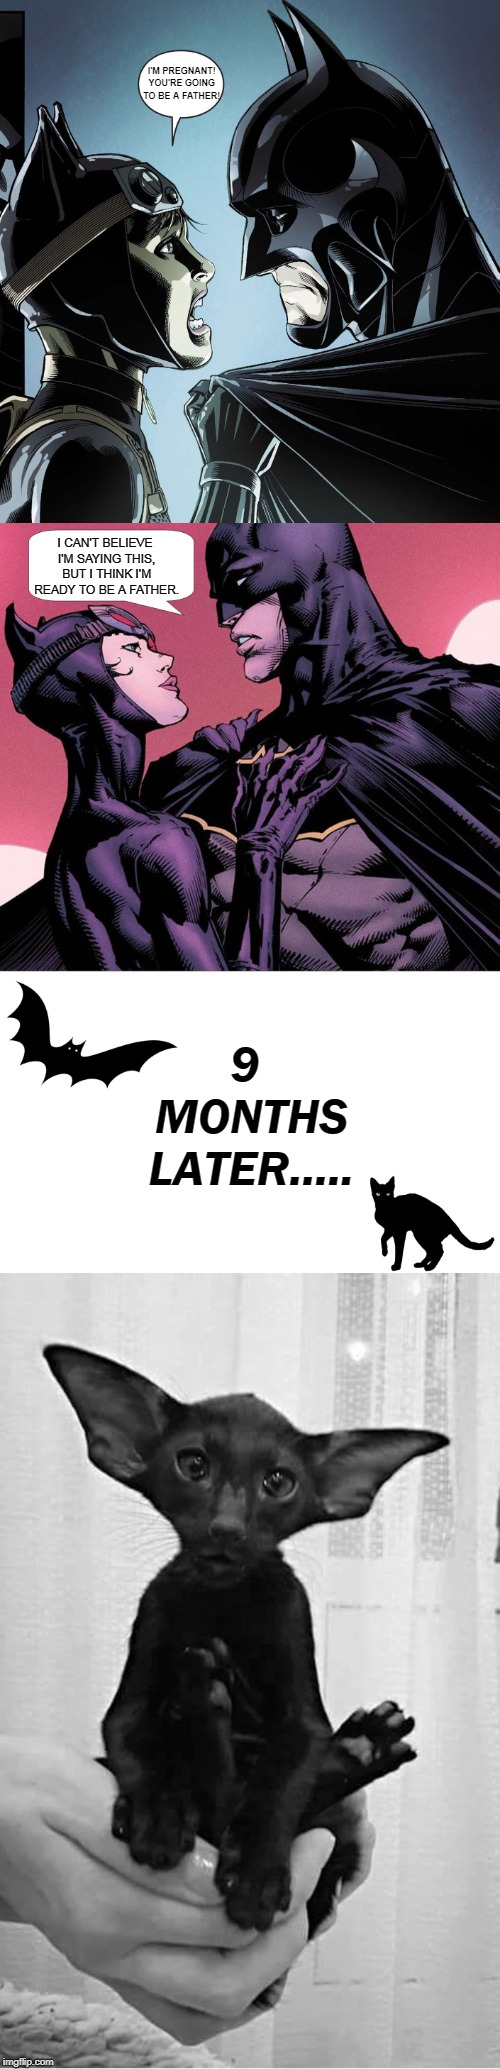 BATCAT | I'M PREGNANT! YOU'RE GOING TO BE A FATHER! 9 MONTHS LATER..... I CAN'T BELIEVE I'M SAYING THIS, BUT I THINK I'M READY TO BE A FATHER. | image tagged in memes,batman,catwoman,superheroes,superhero,superhero week | made w/ Imgflip meme maker